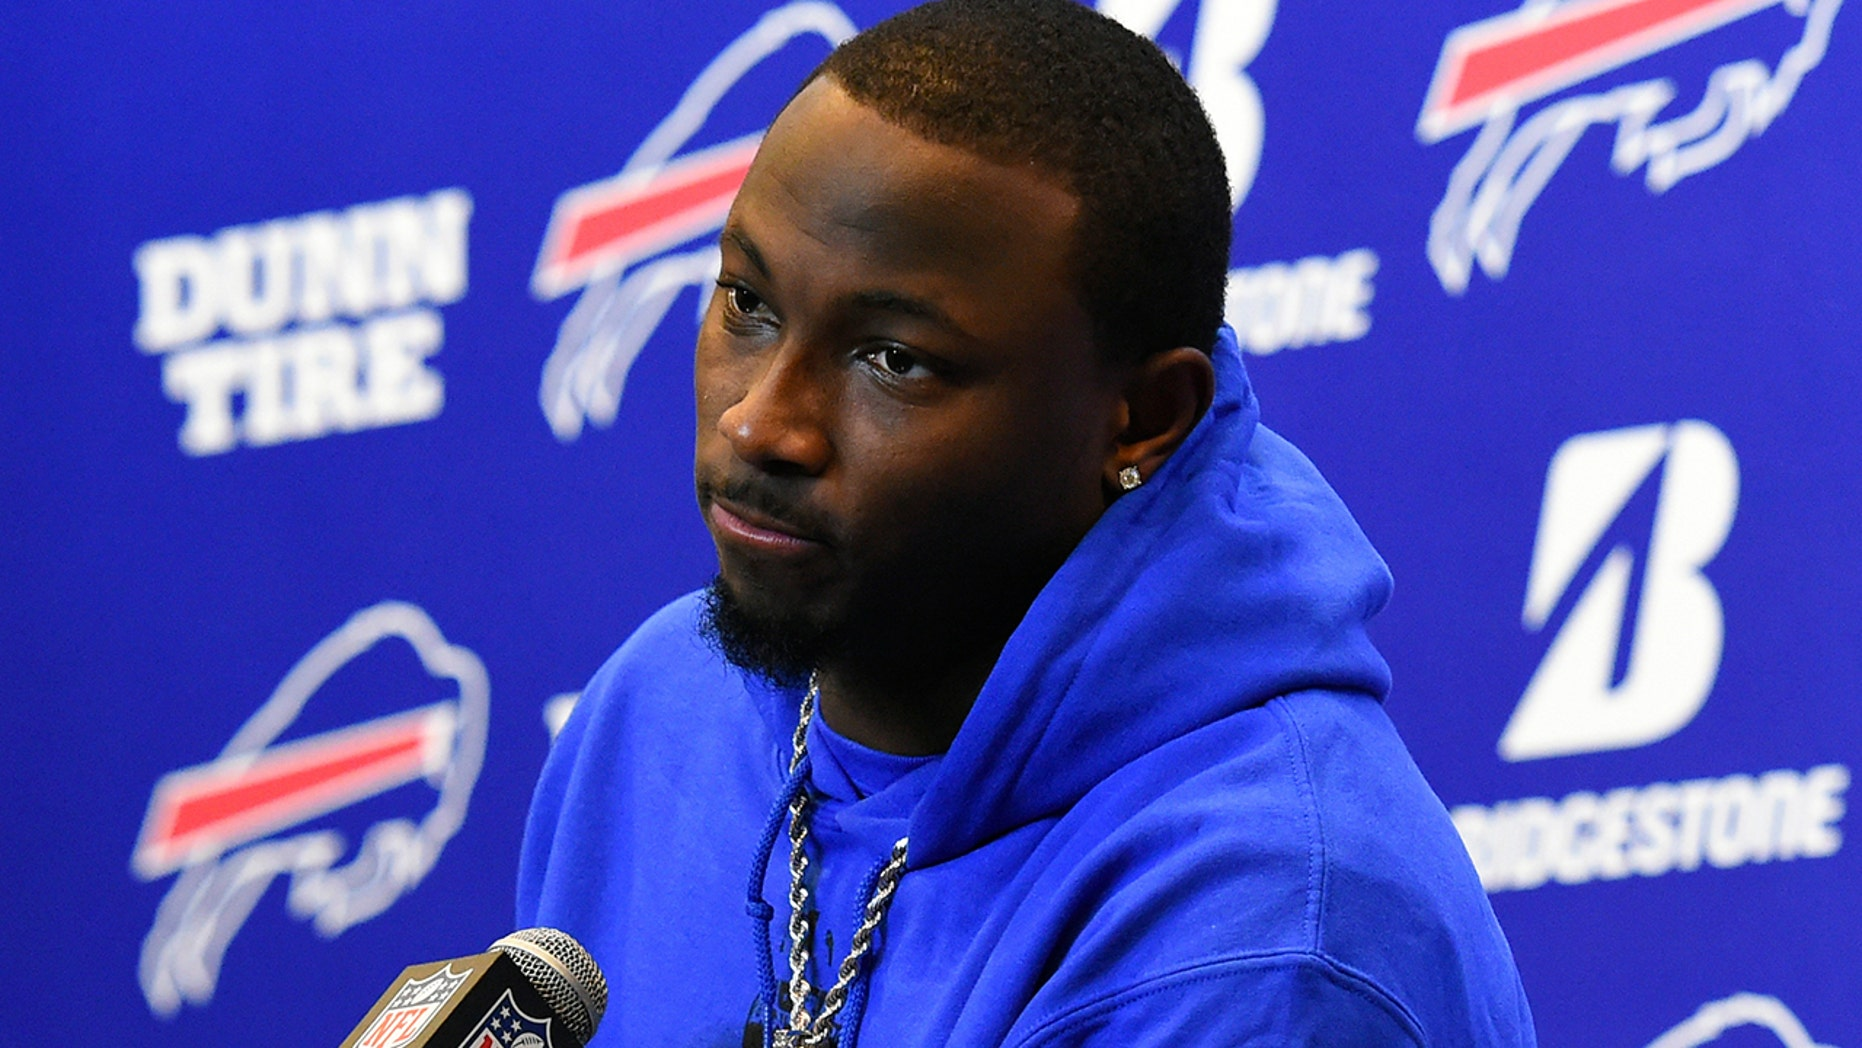 McCoy was accused of orchestrating an attack on his ex-girlfriend.